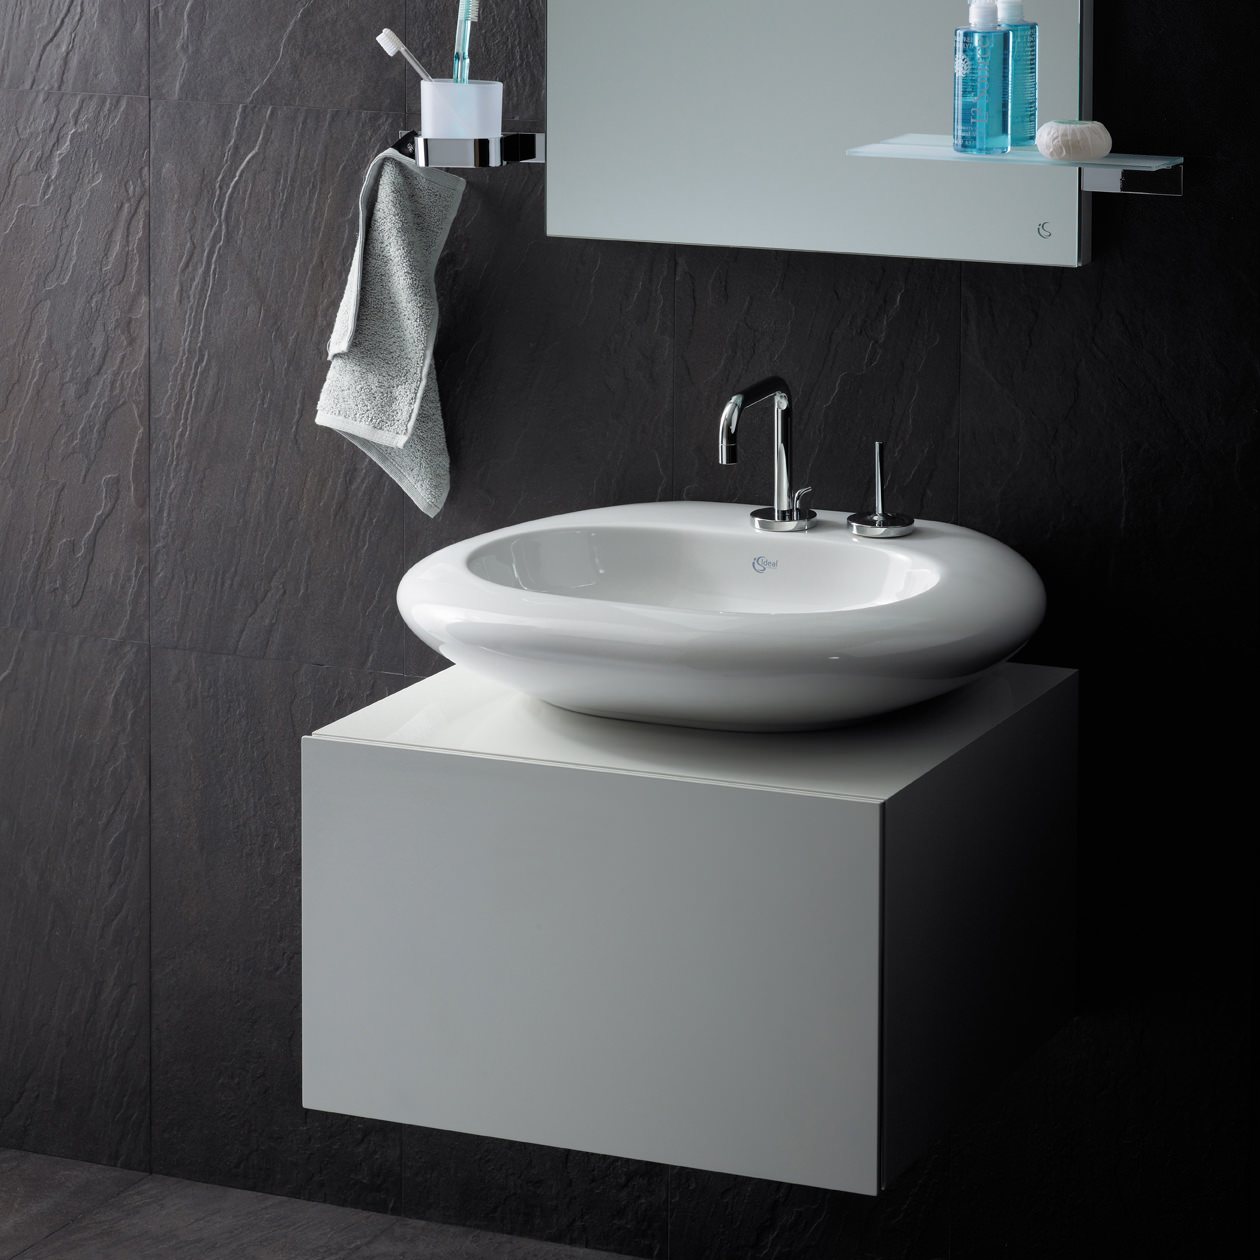 ideal standard simplyu 2 hole basin mixer with 2 round backplates. Black Bedroom Furniture Sets. Home Design Ideas